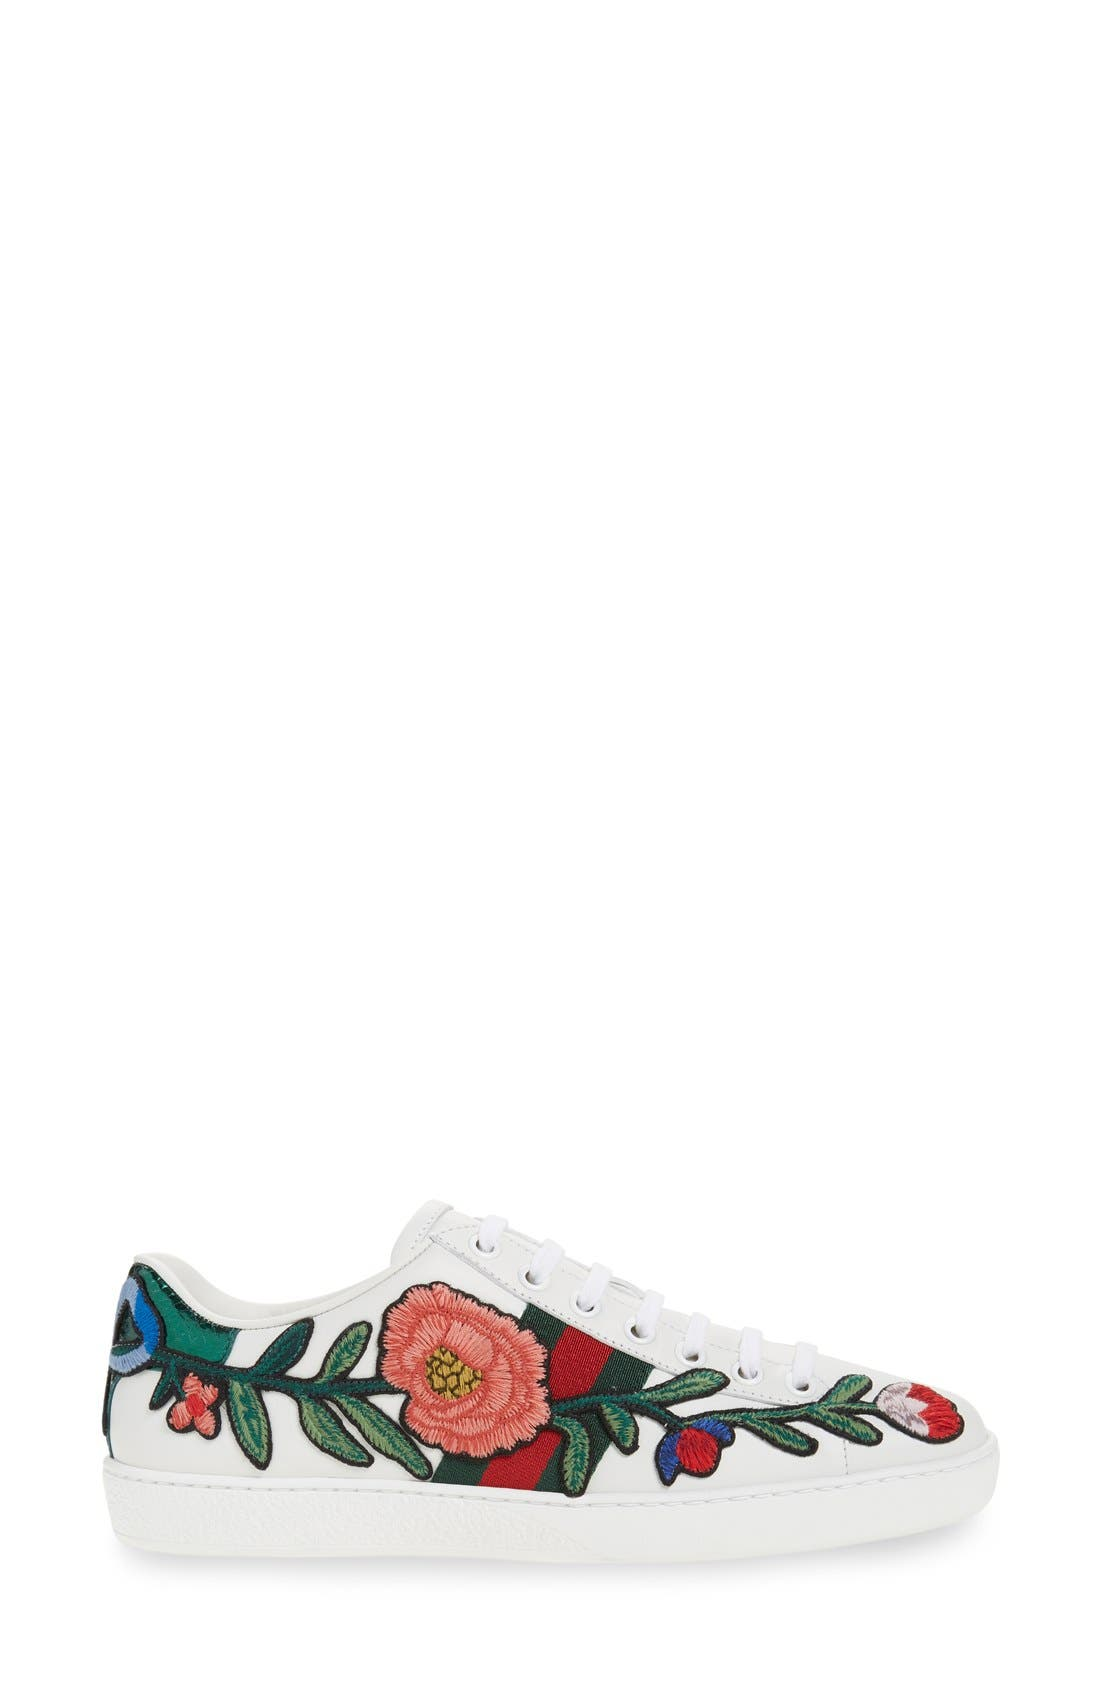 'New Ace' Low Top Sneaker,                             Alternate thumbnail 4, color,                             WHITE FLORAL